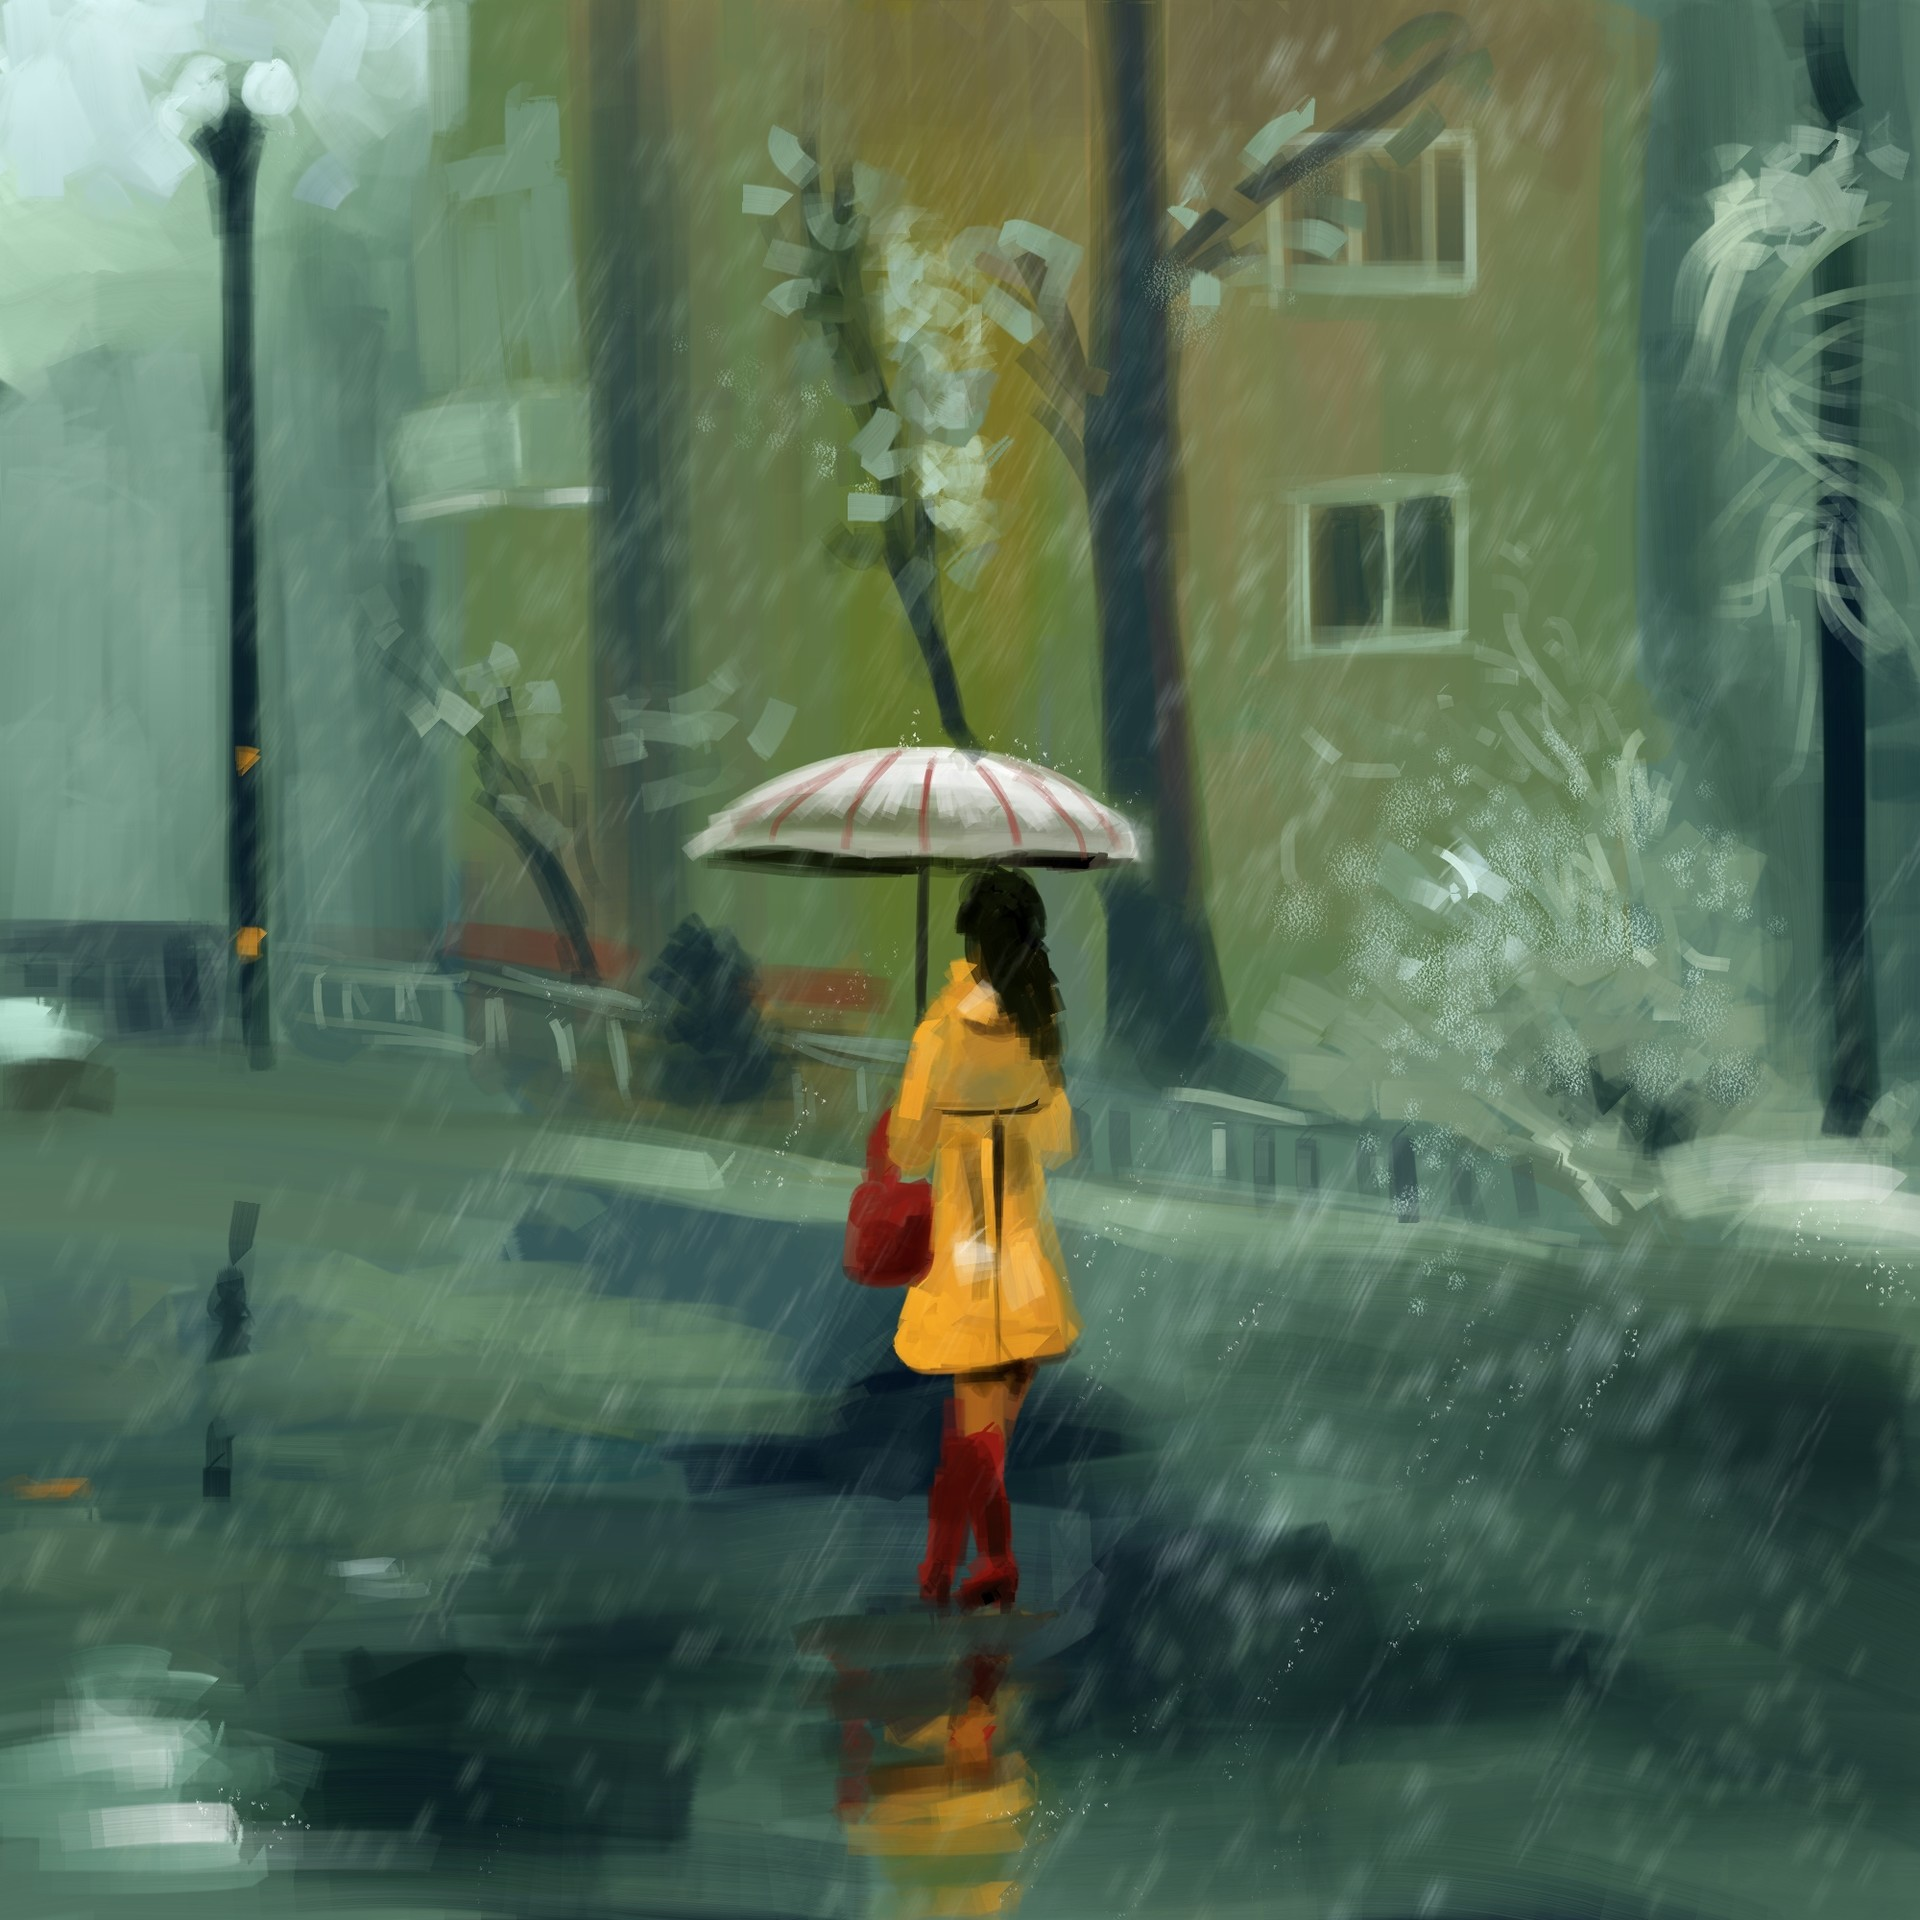 Rainy day